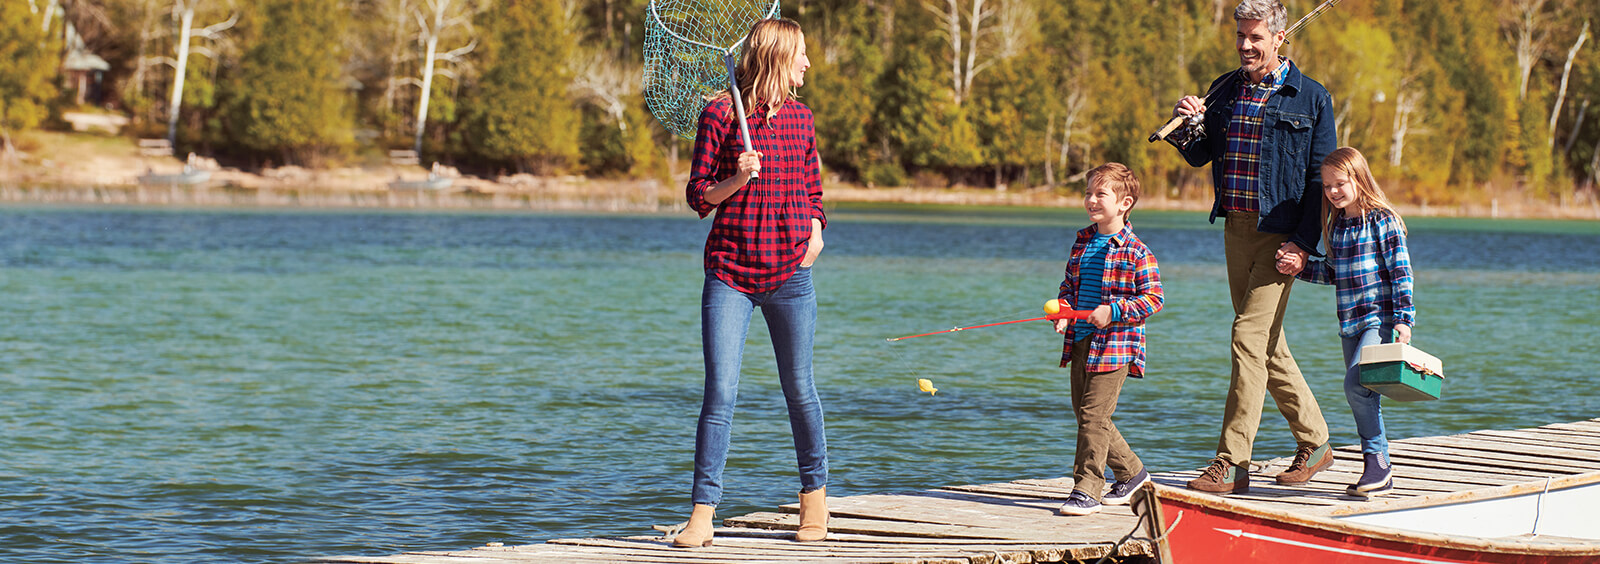 Why are flannel shirts so awesome?